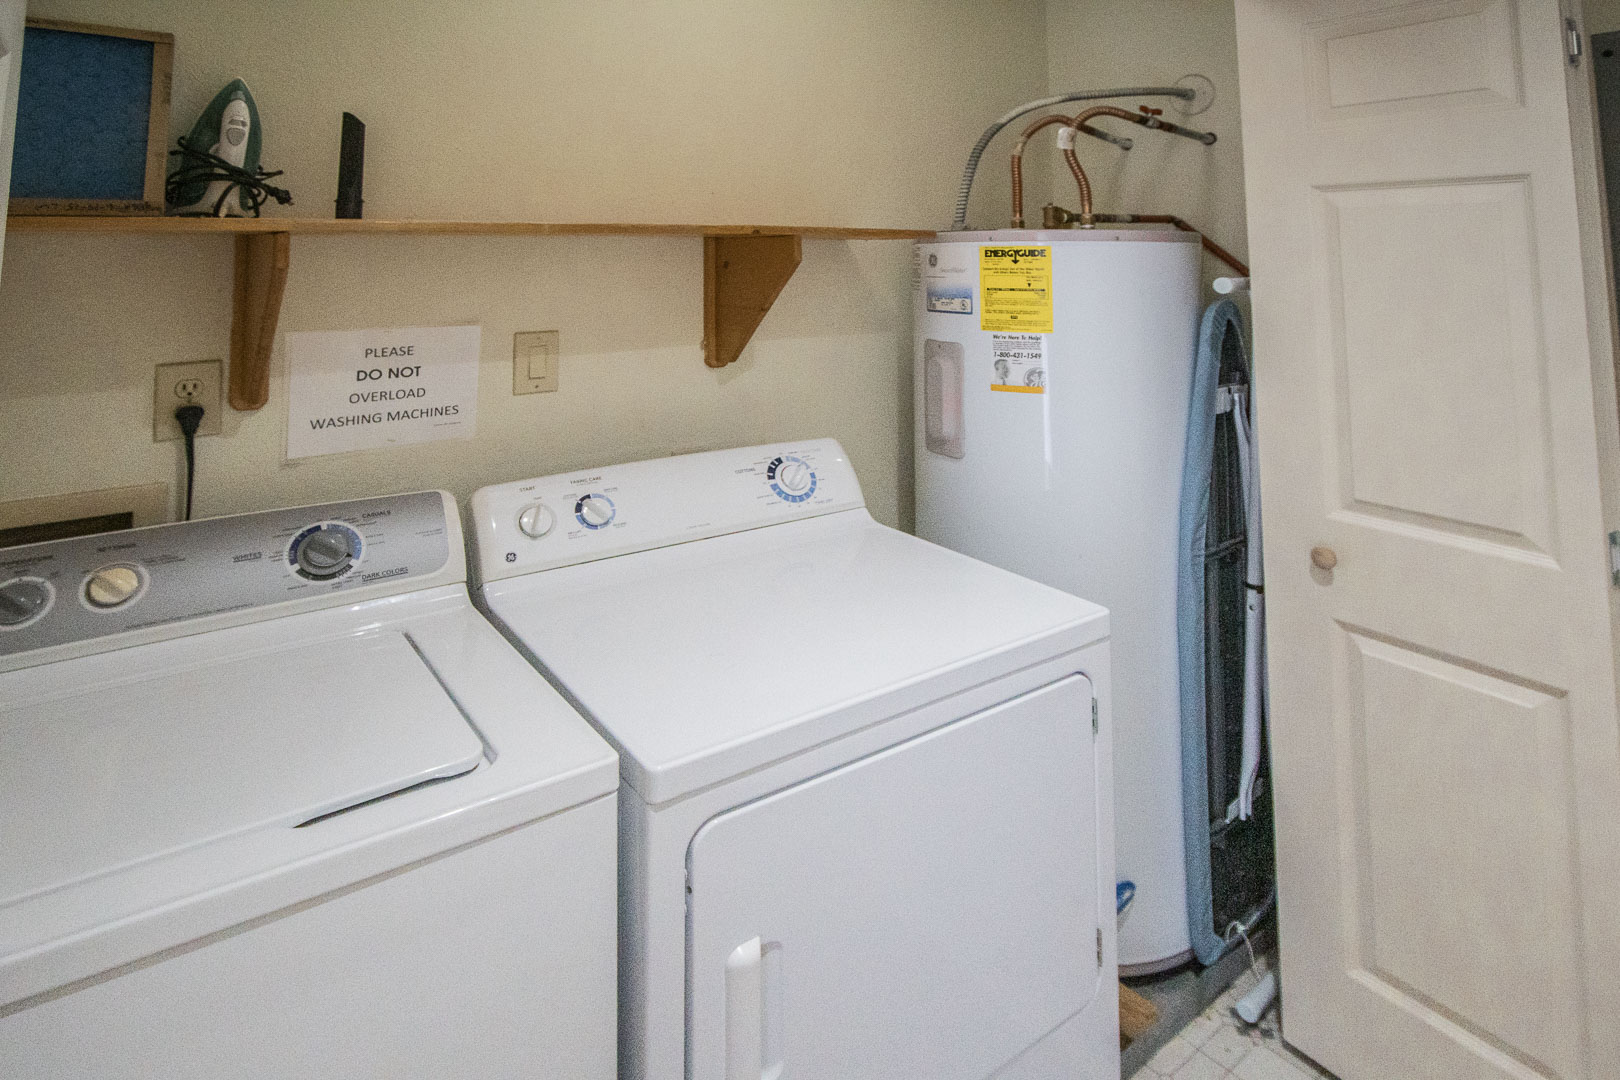 A laundry room amenity at VRI's Barrier Island Station in North Carolina.